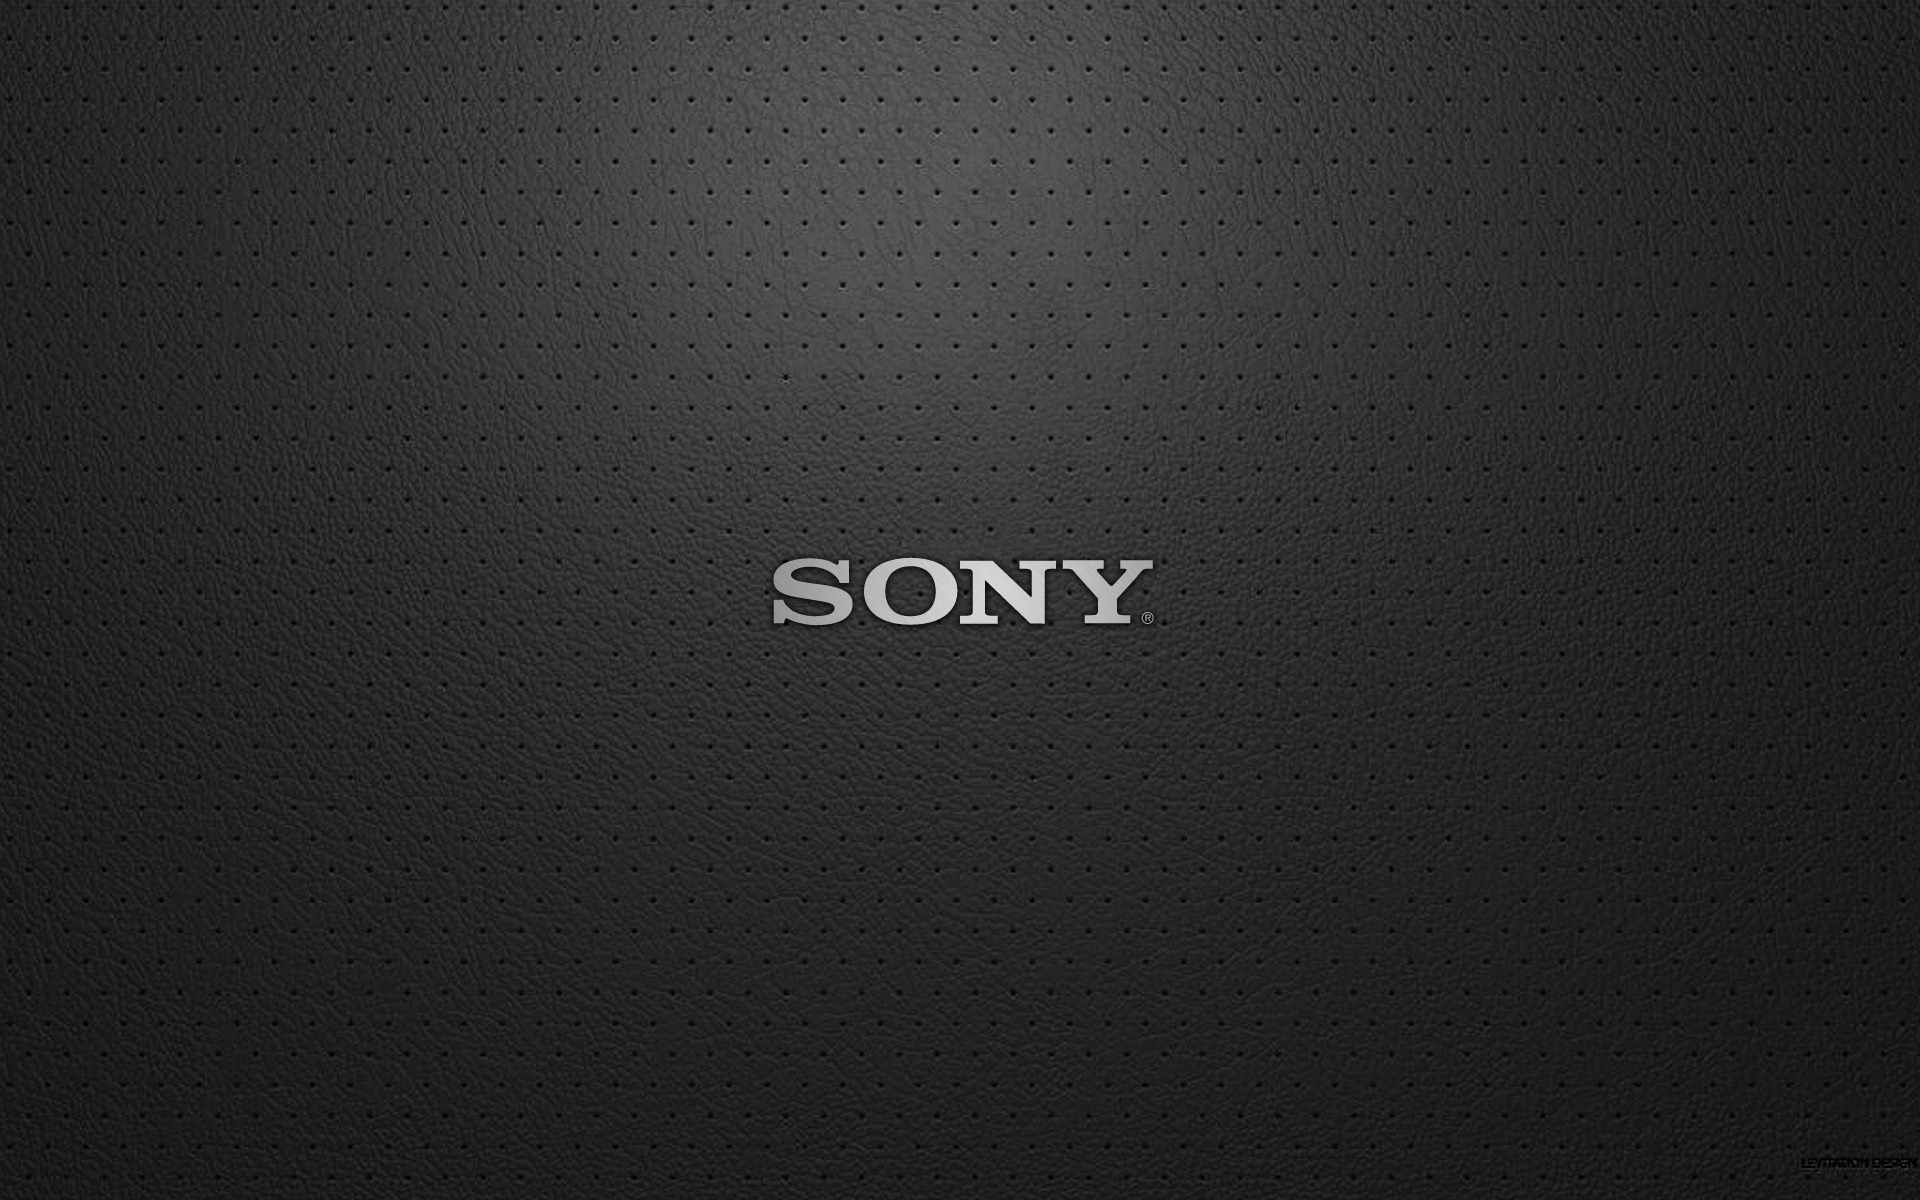 HD Sony Wallpaper